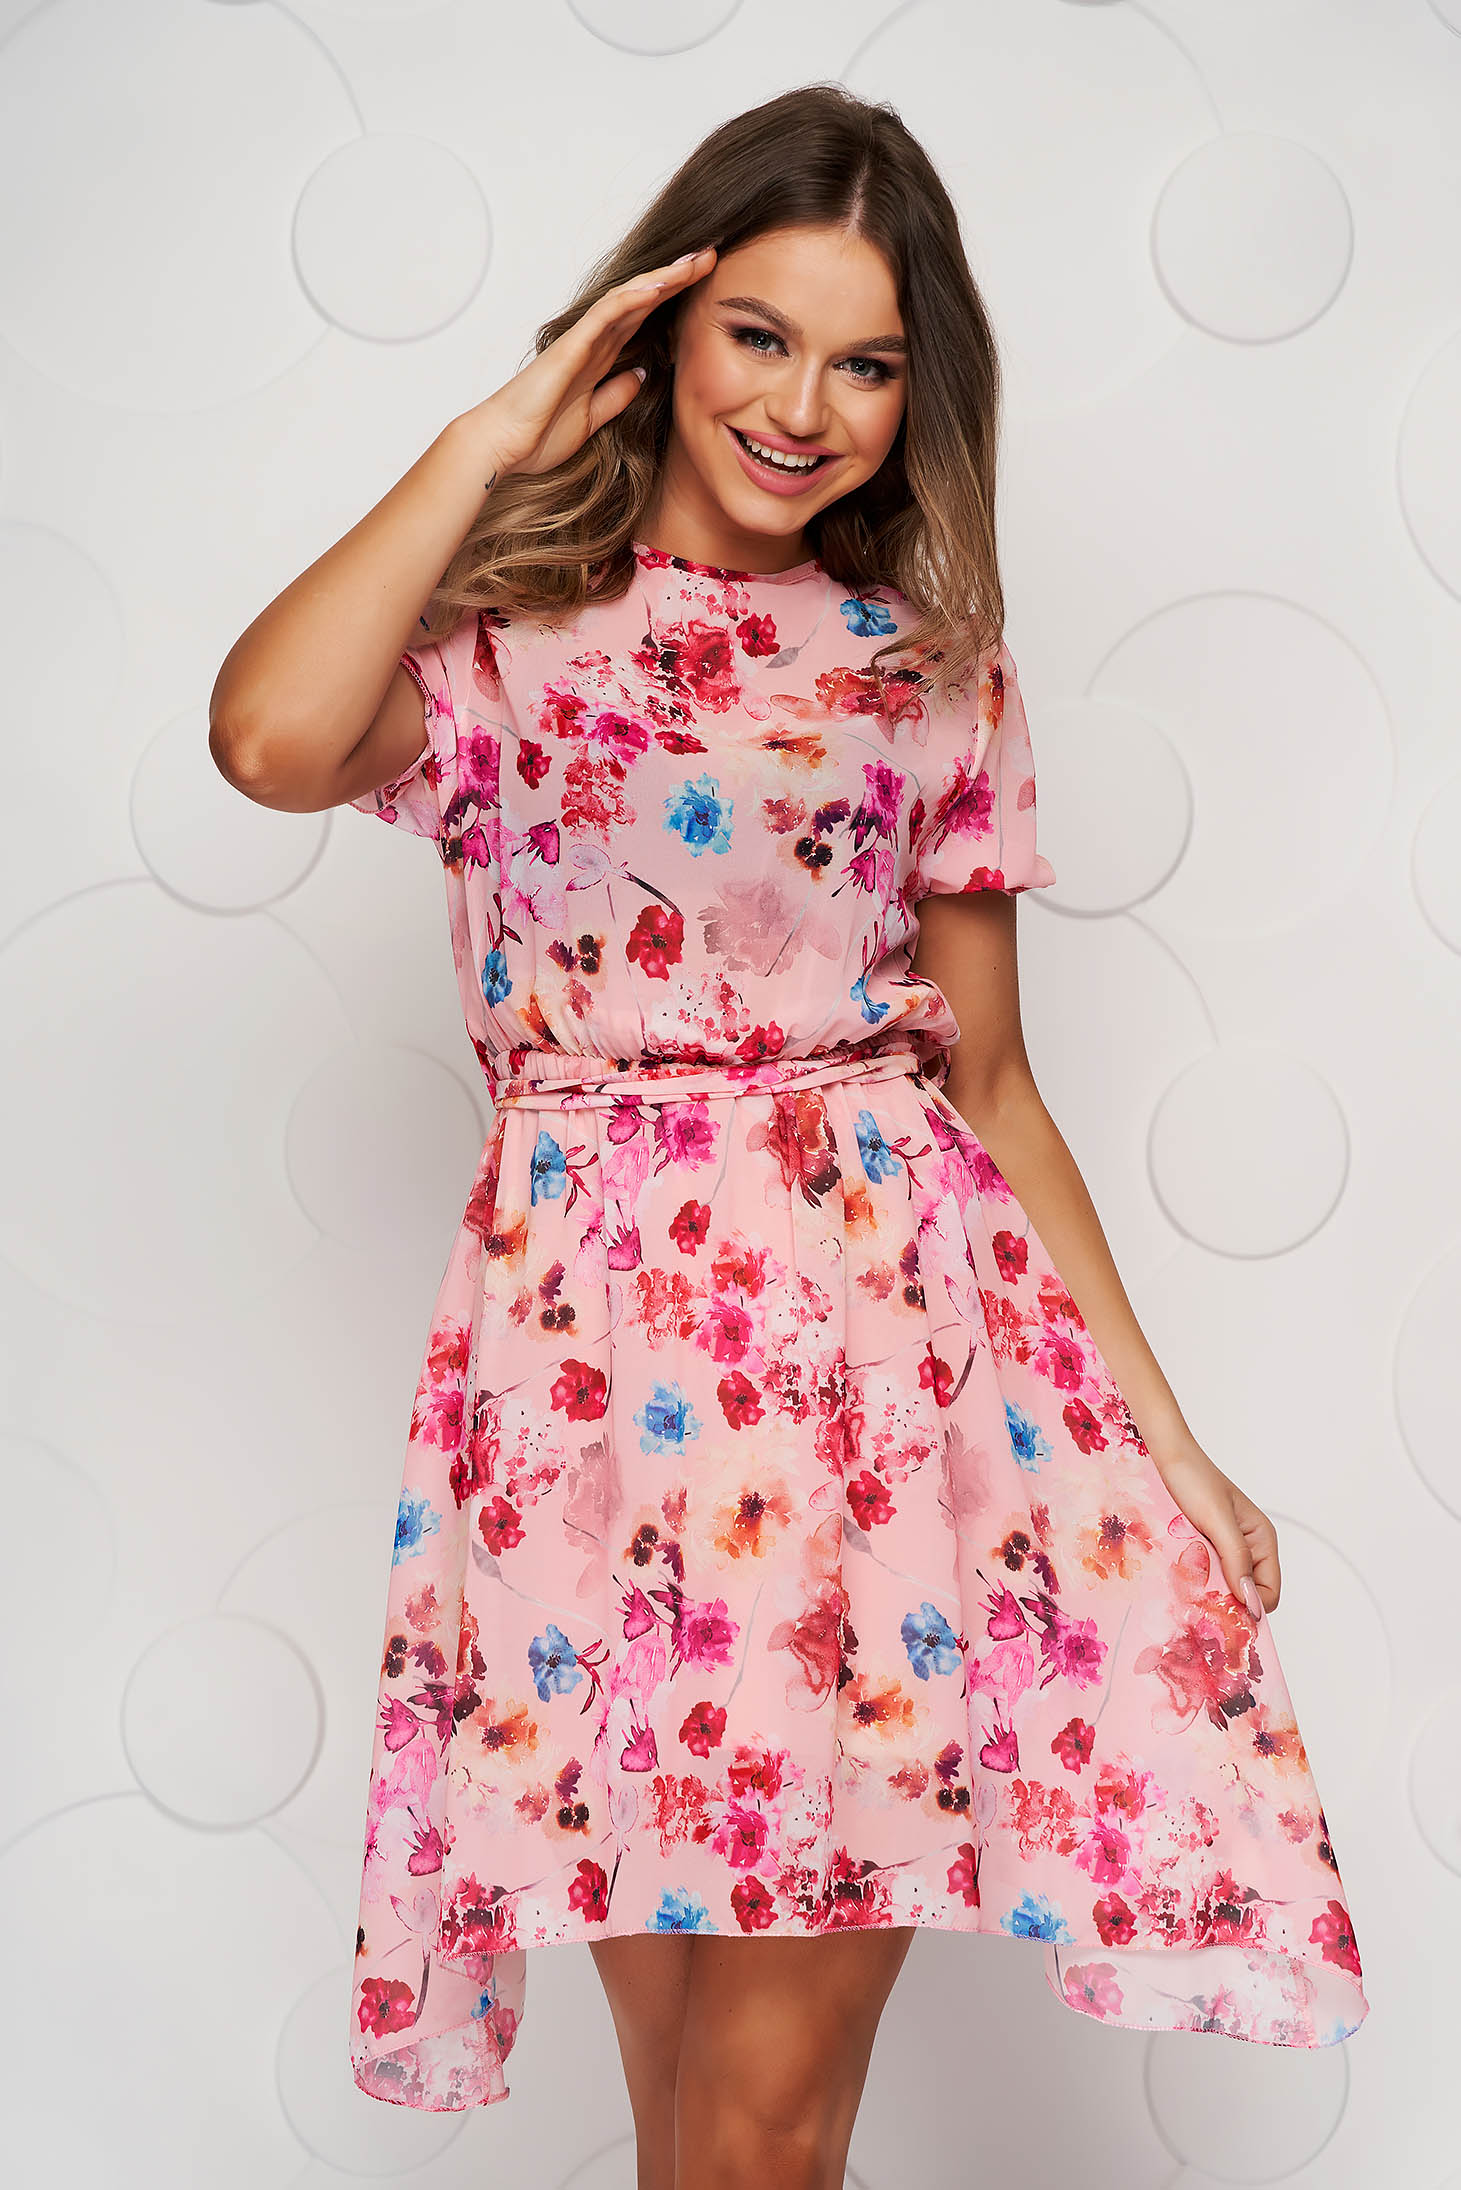 Pink dress asymmetrical cloche with elastic waist with floral print accessorized with tied waistband